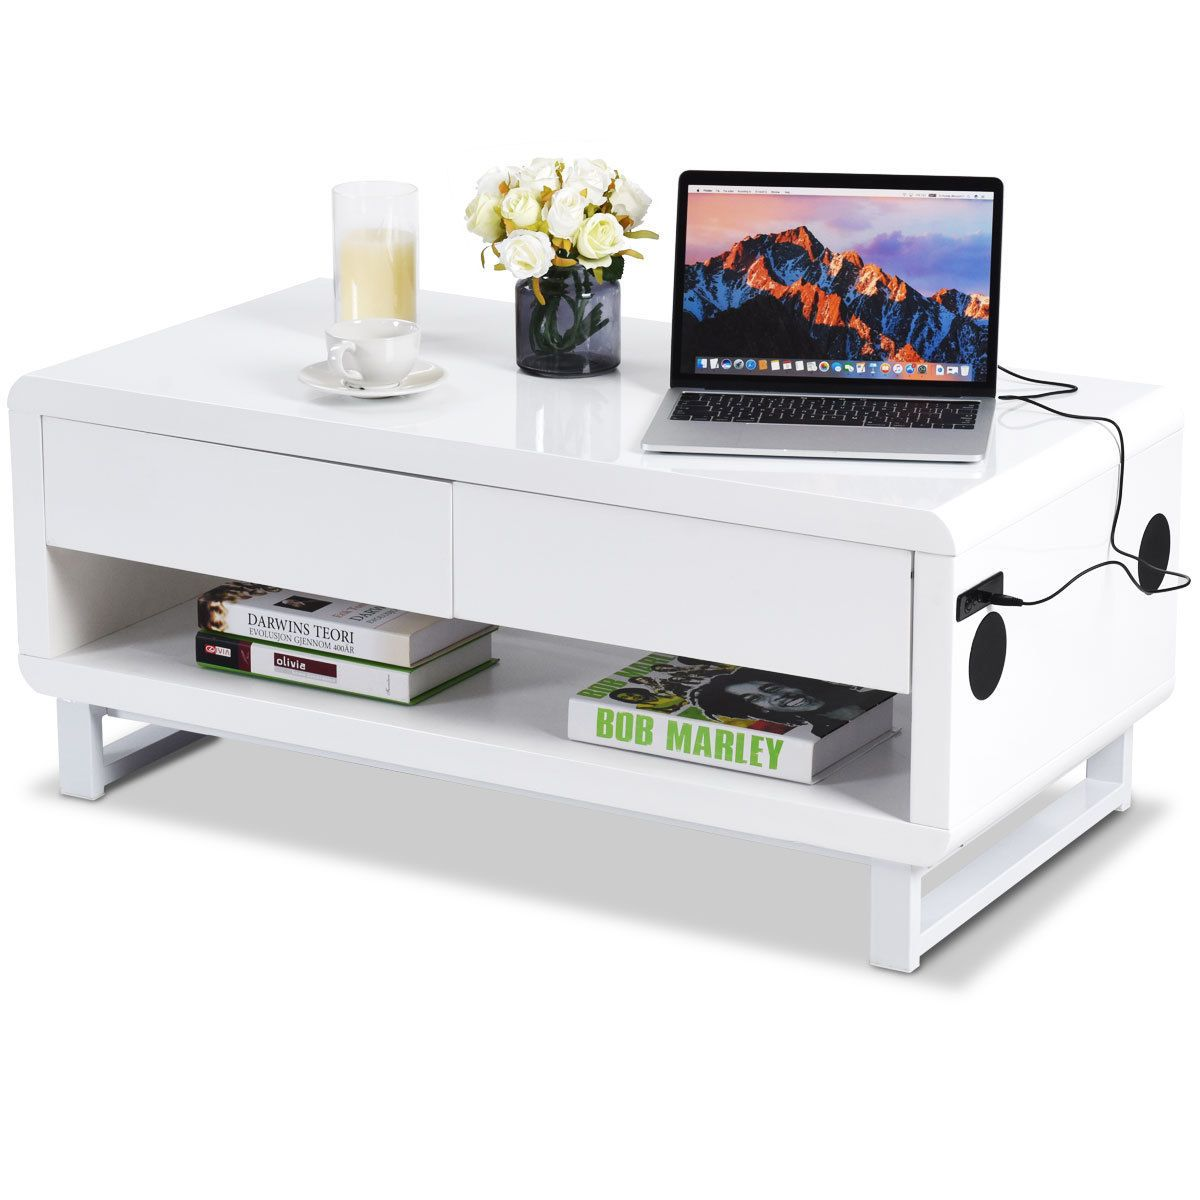 Modern Coffee Table Bluetooth Speakers Drawer Led Light Usb Charging Port Modern Coffee Tables White Coffee Table Modern Coffee Table With Storage [ 1200 x 1200 Pixel ]